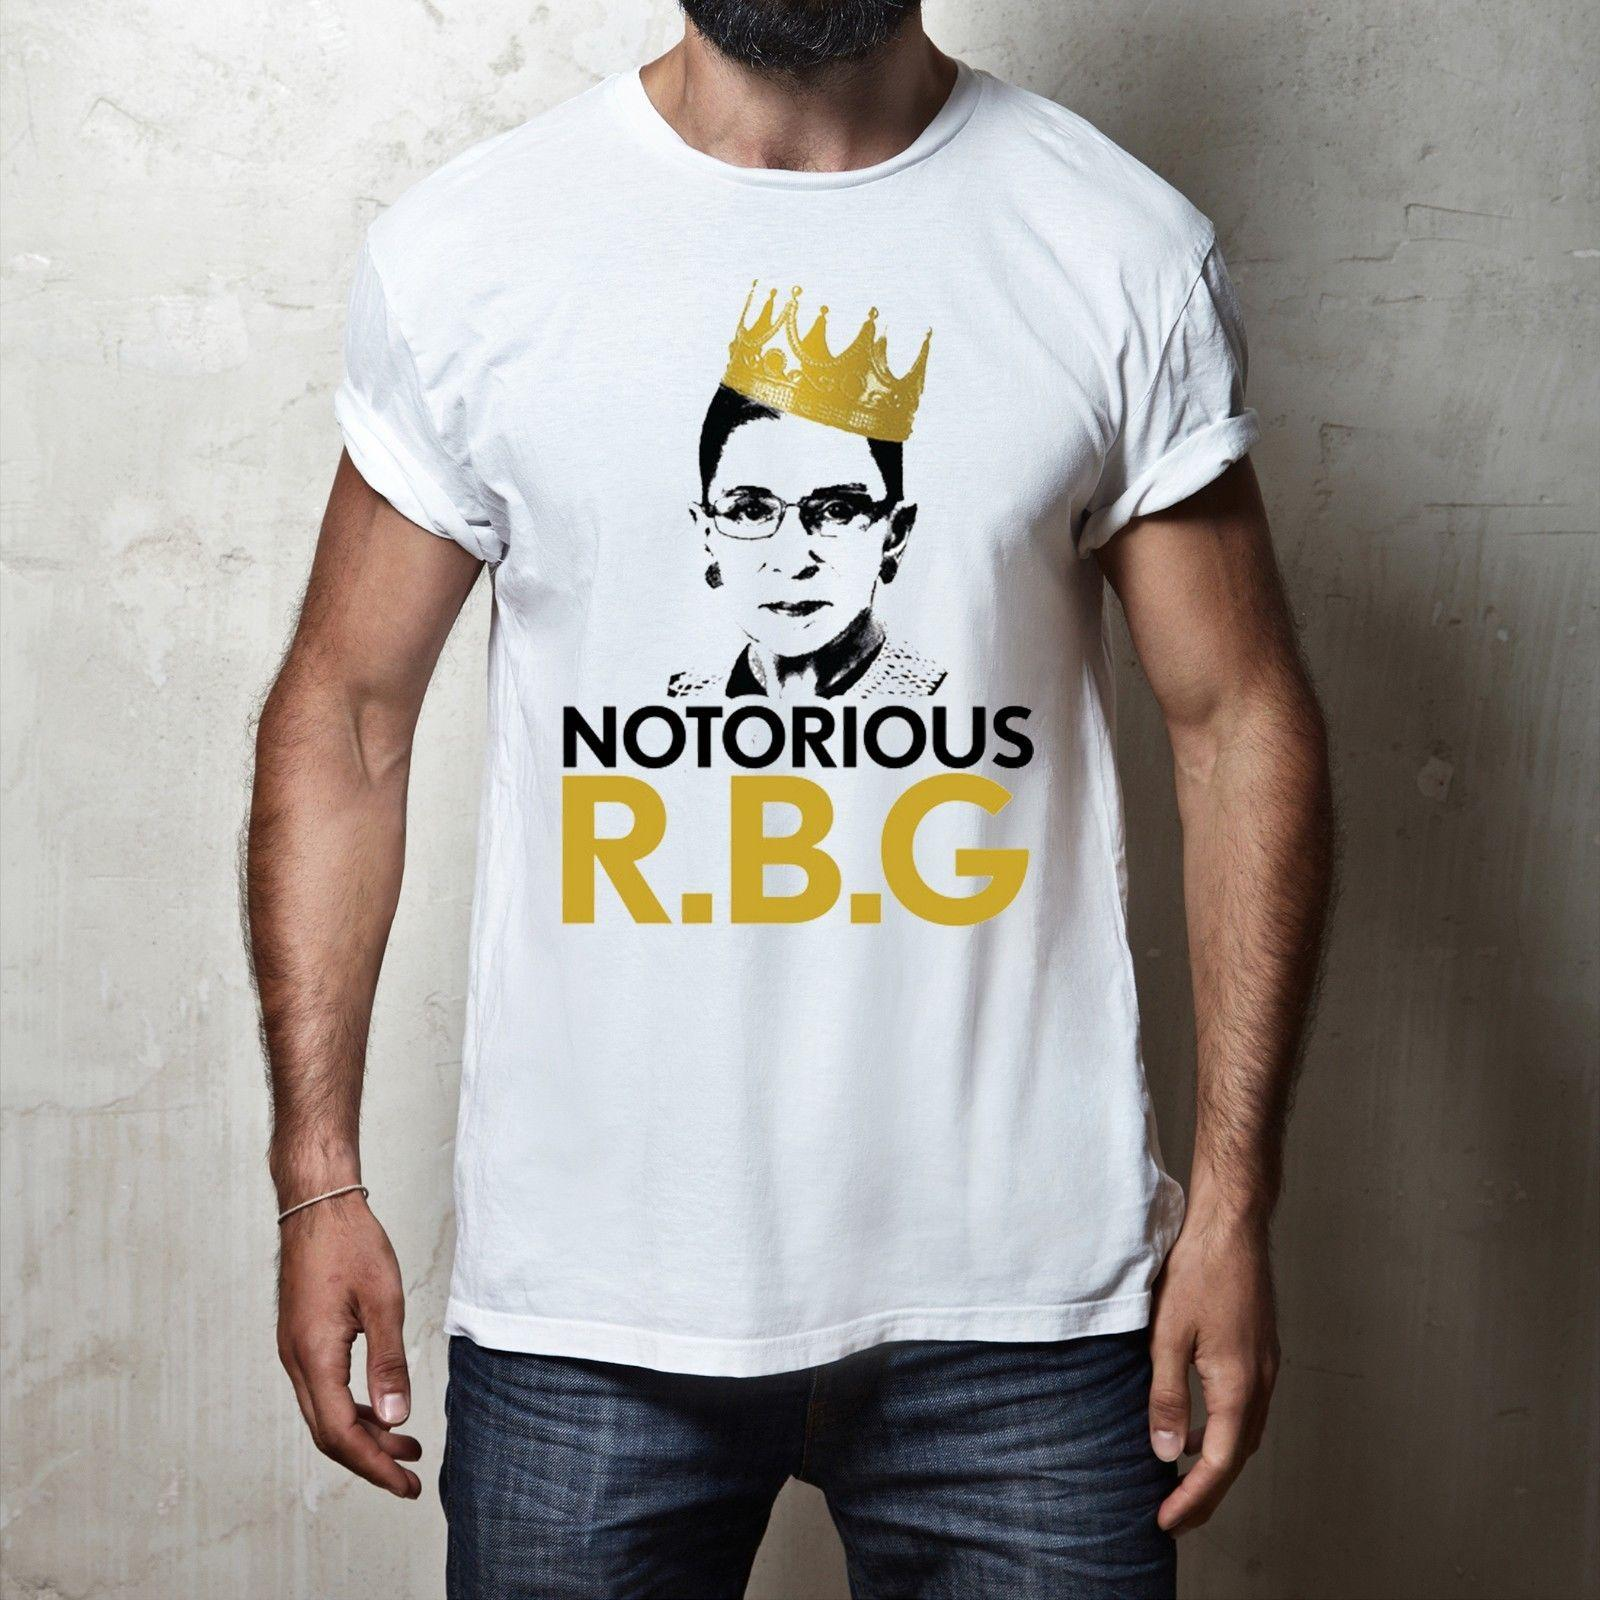 72613bbd Funny Notorious RBG Ruth Bader Ginsburg Men's White T-Shirt Size S-3XL  Men's Clothing T-Shirts Short Sleeve Male